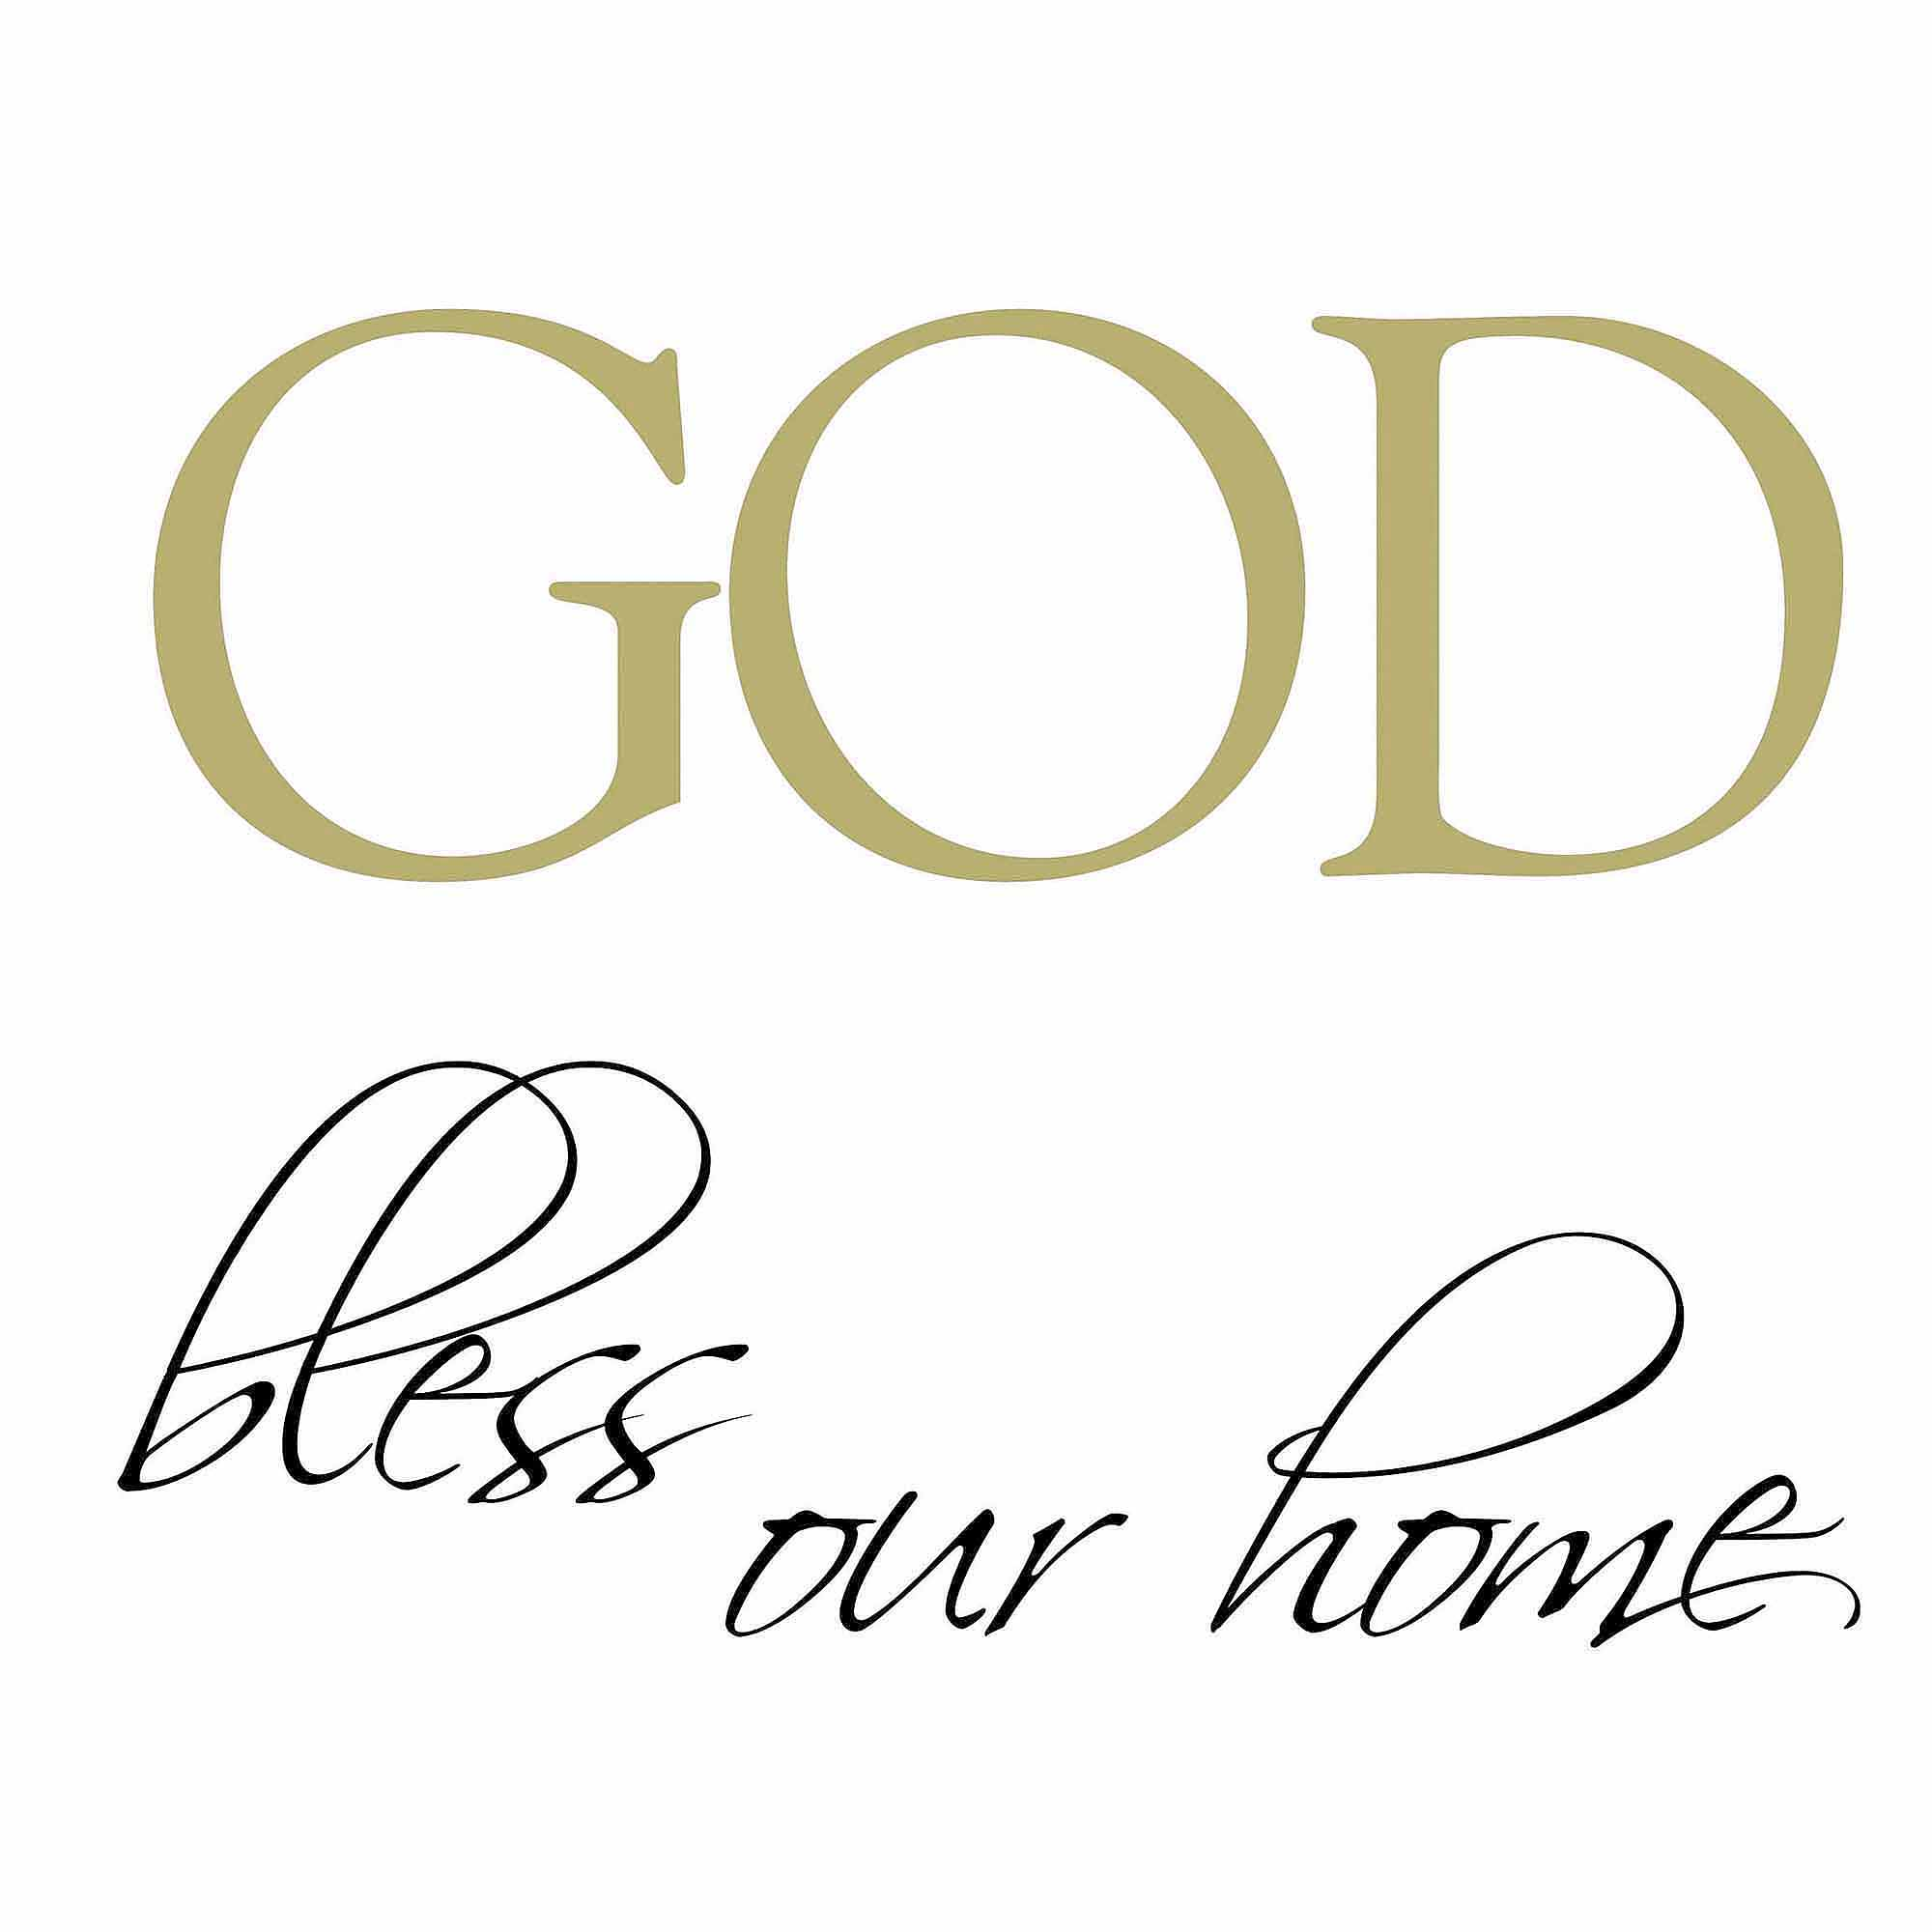 Bless Our Home Quick Quote